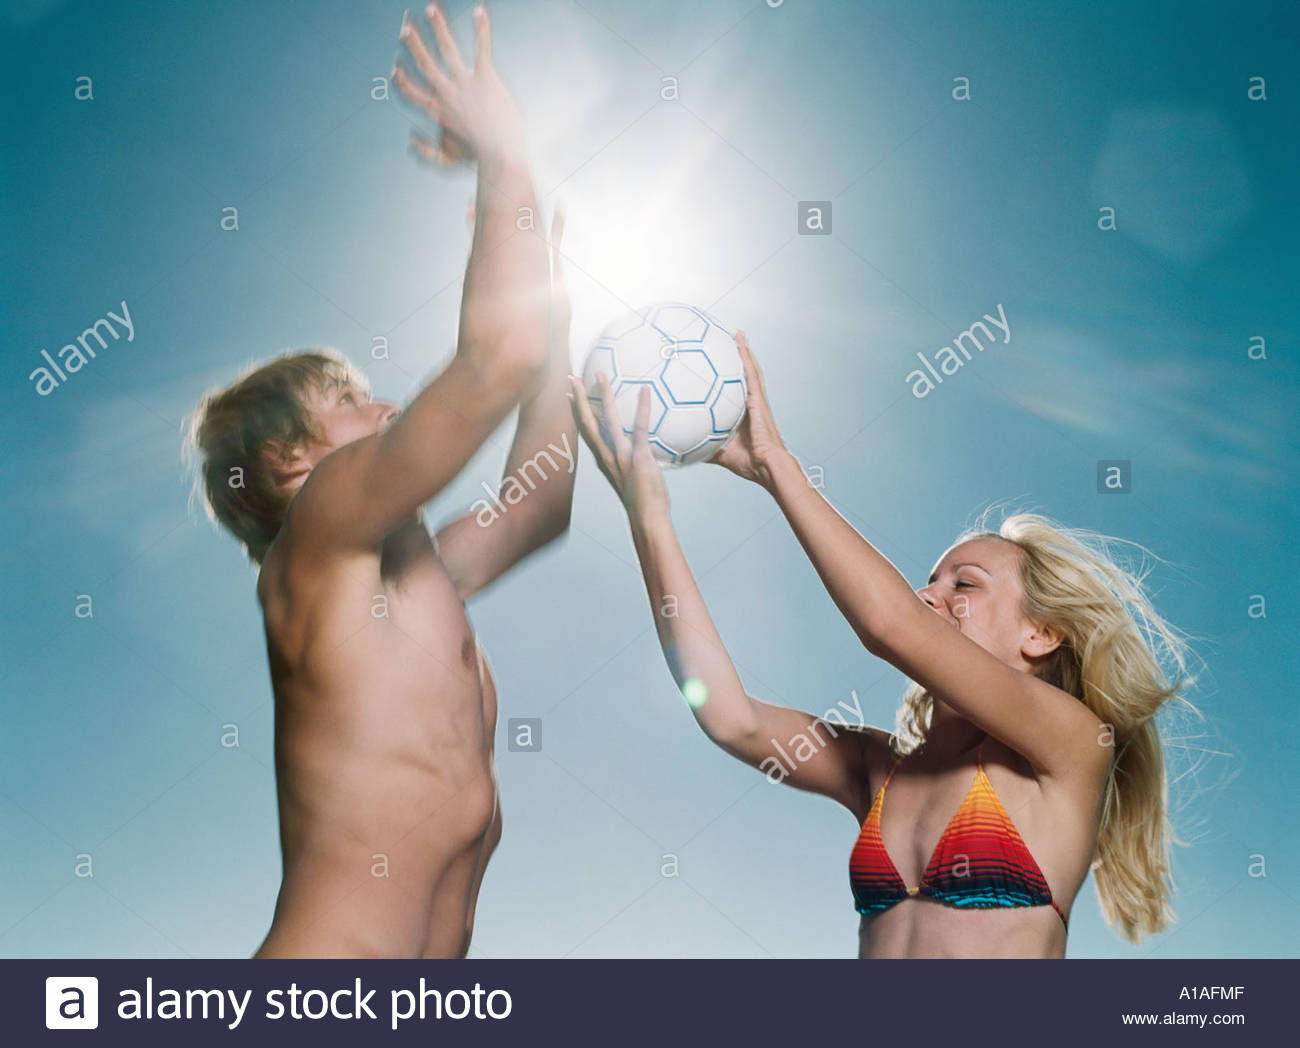 Young man and woman playing volleyball - Stock Image